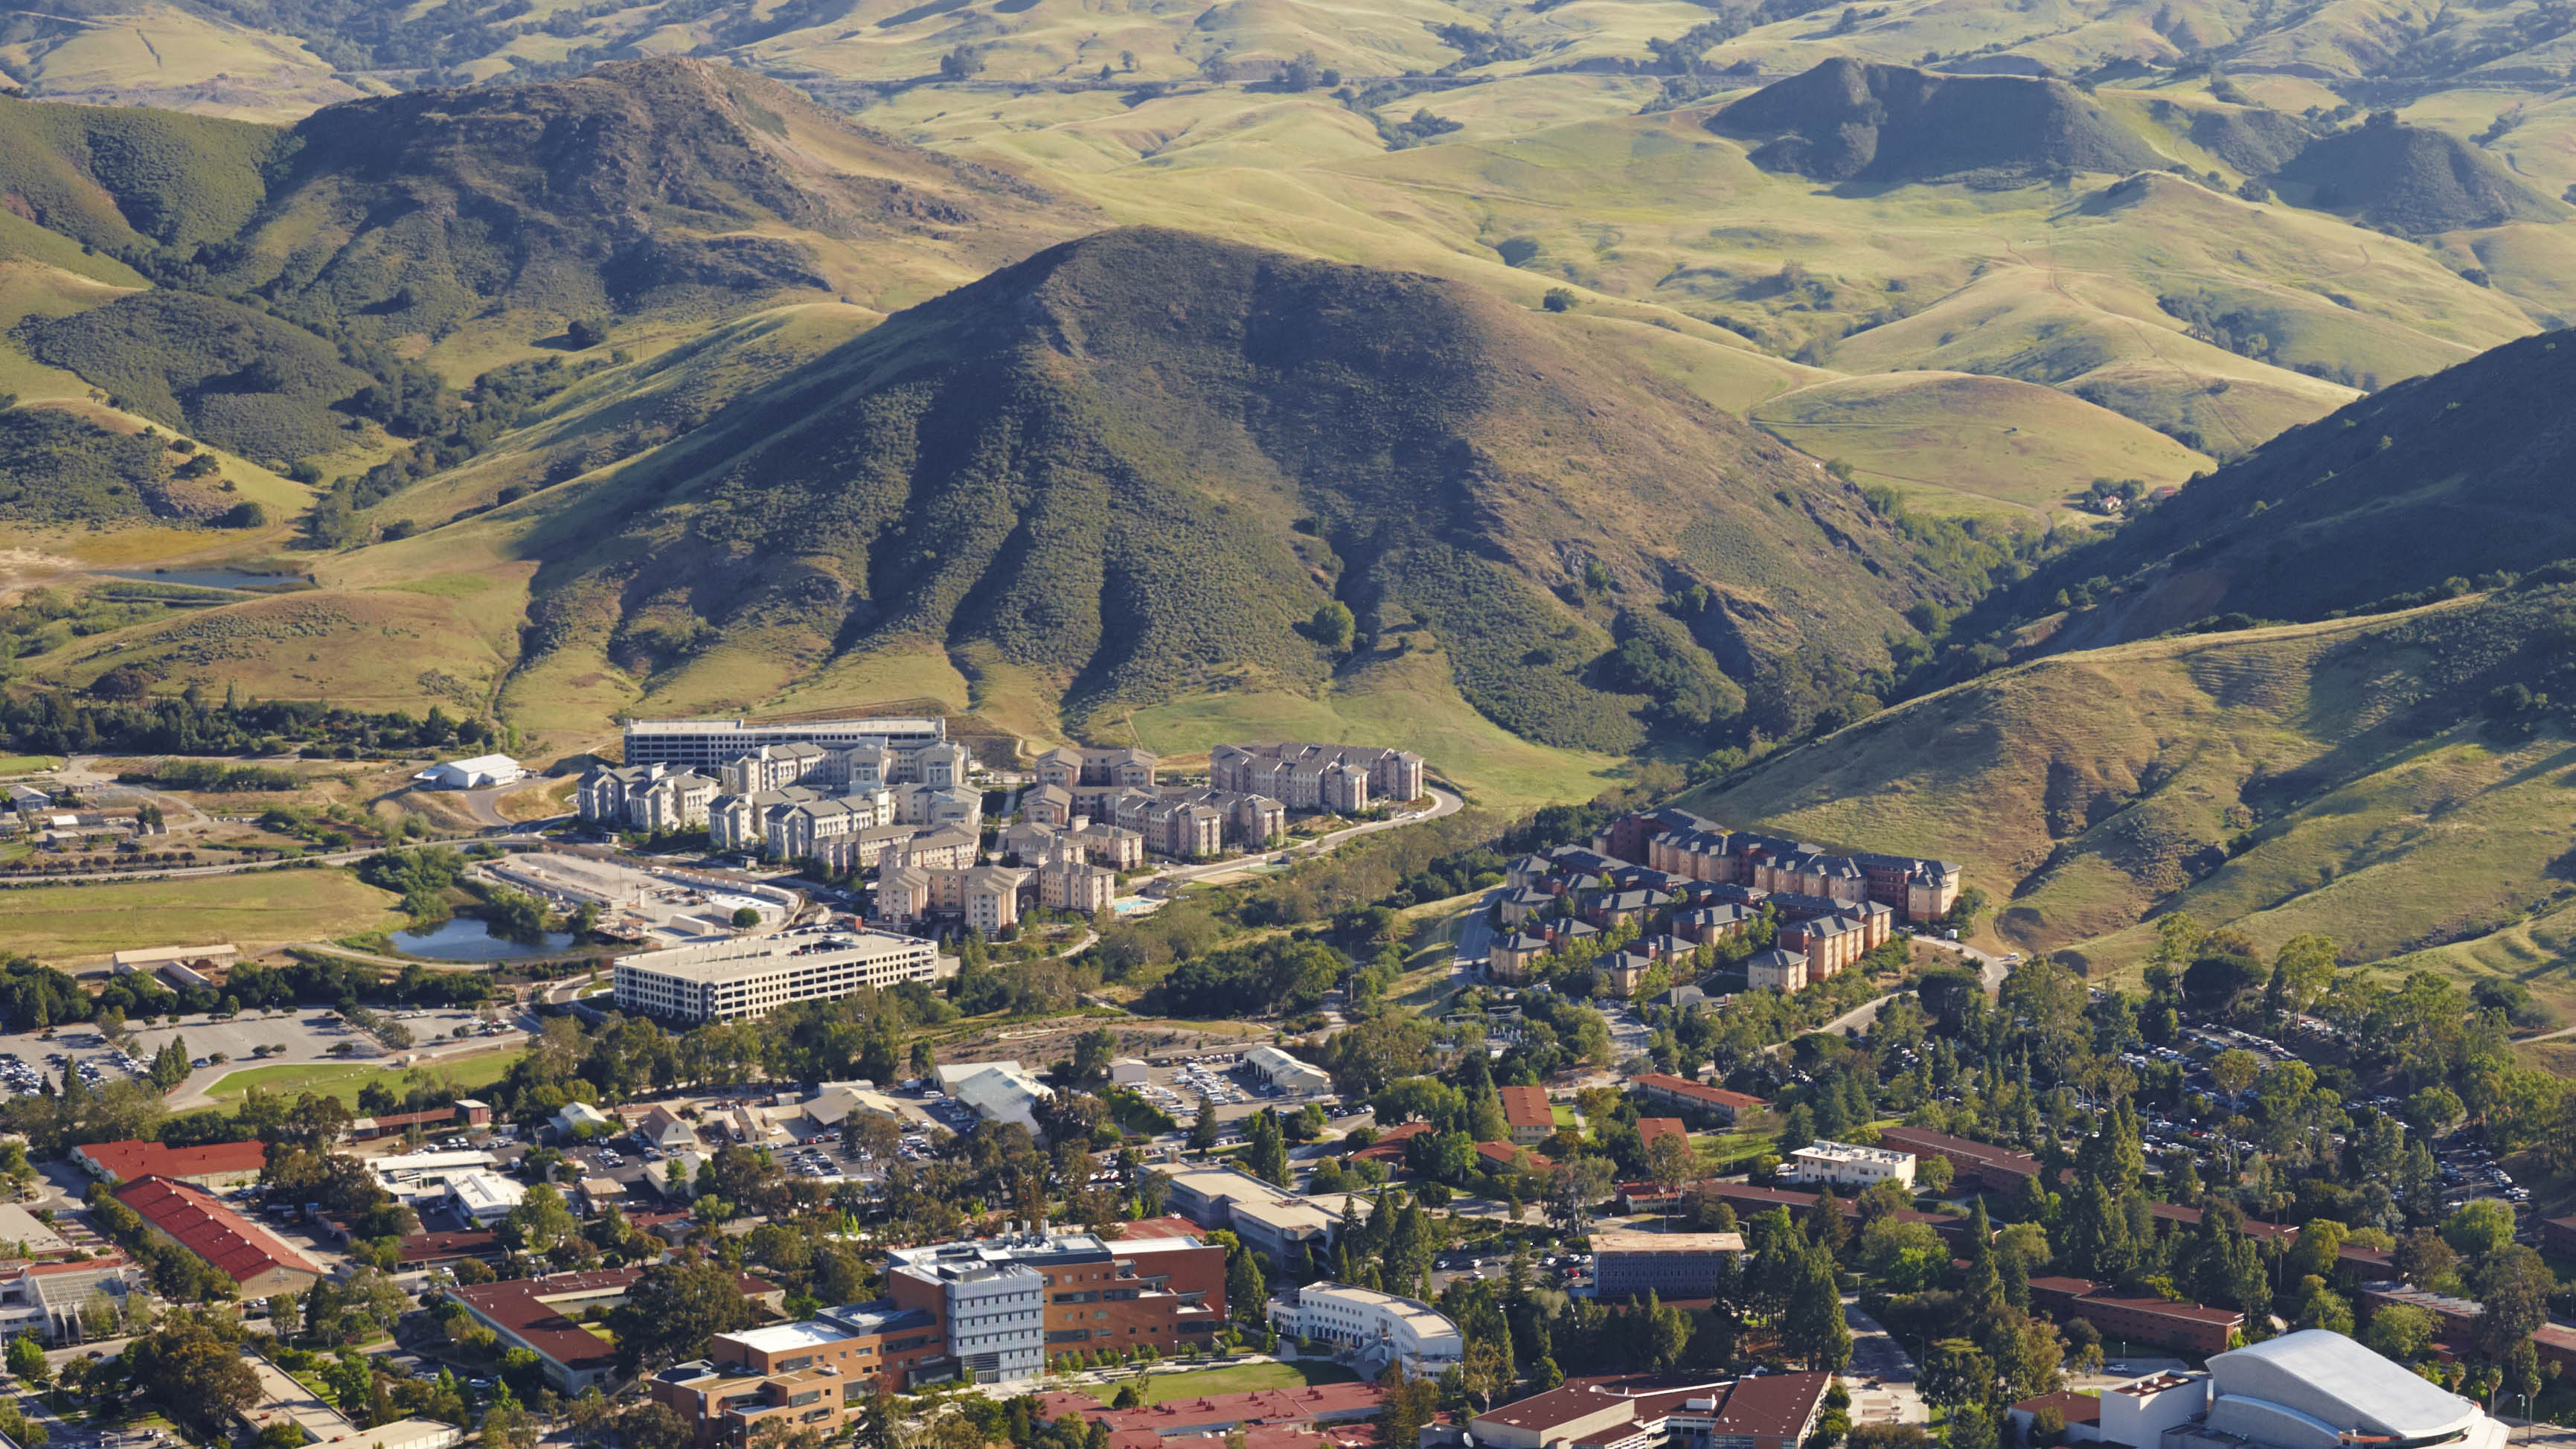 Cal Poly campus image taken from top